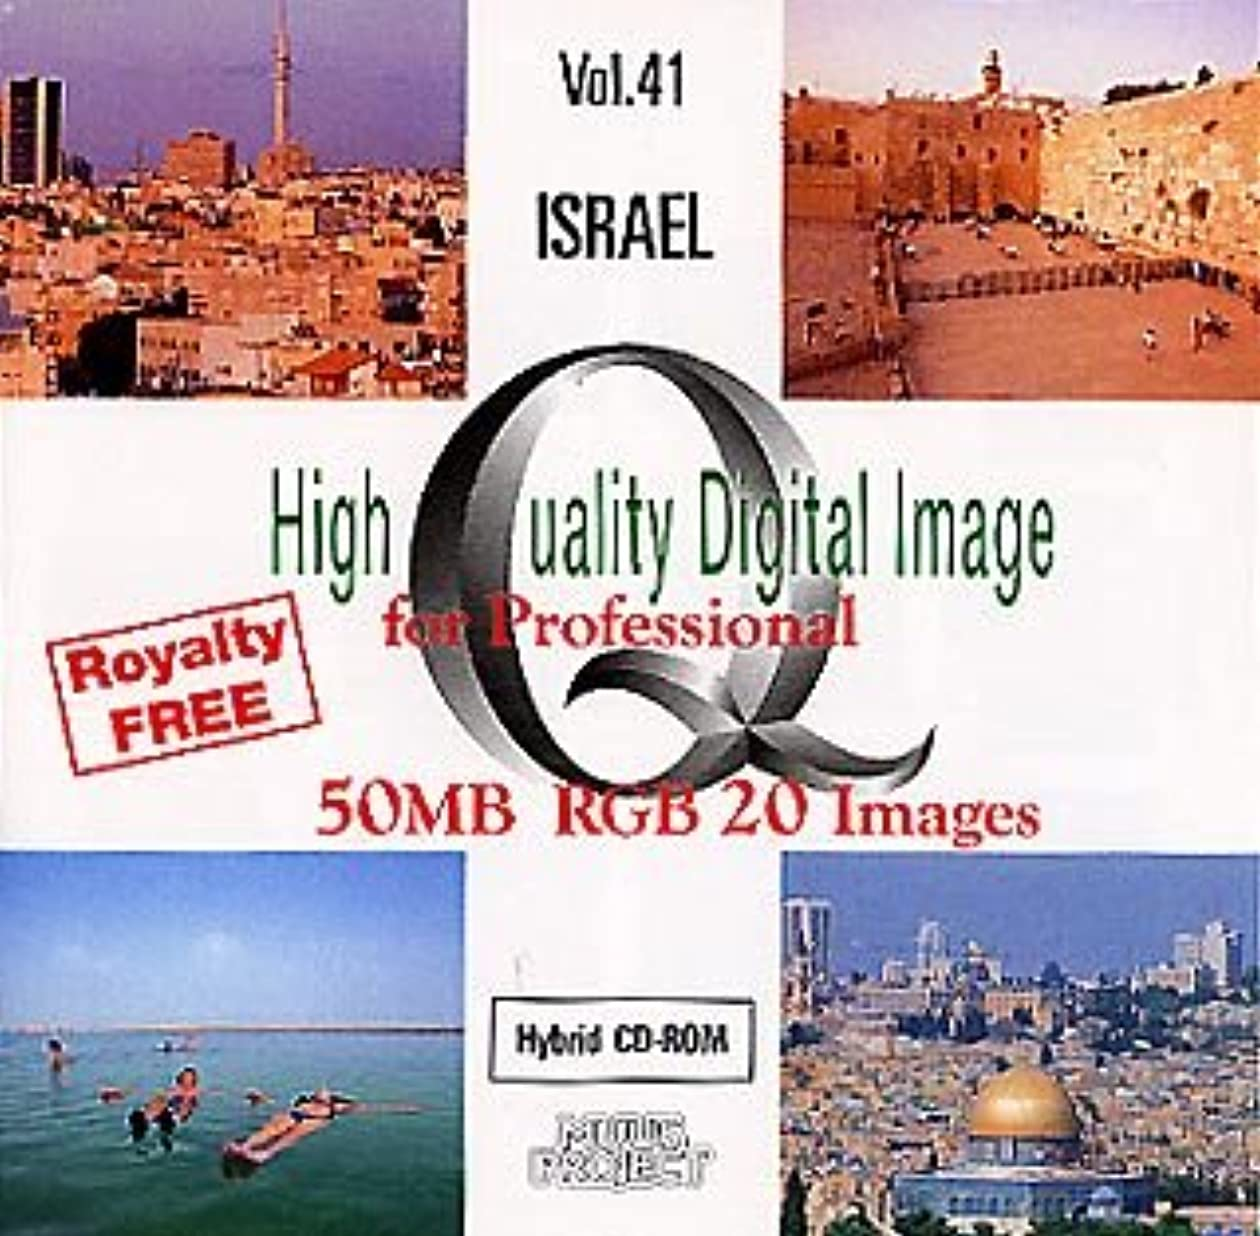 プランテーション確かに流行High Quality Digital Image for Professional Vol.41 ISRAEL